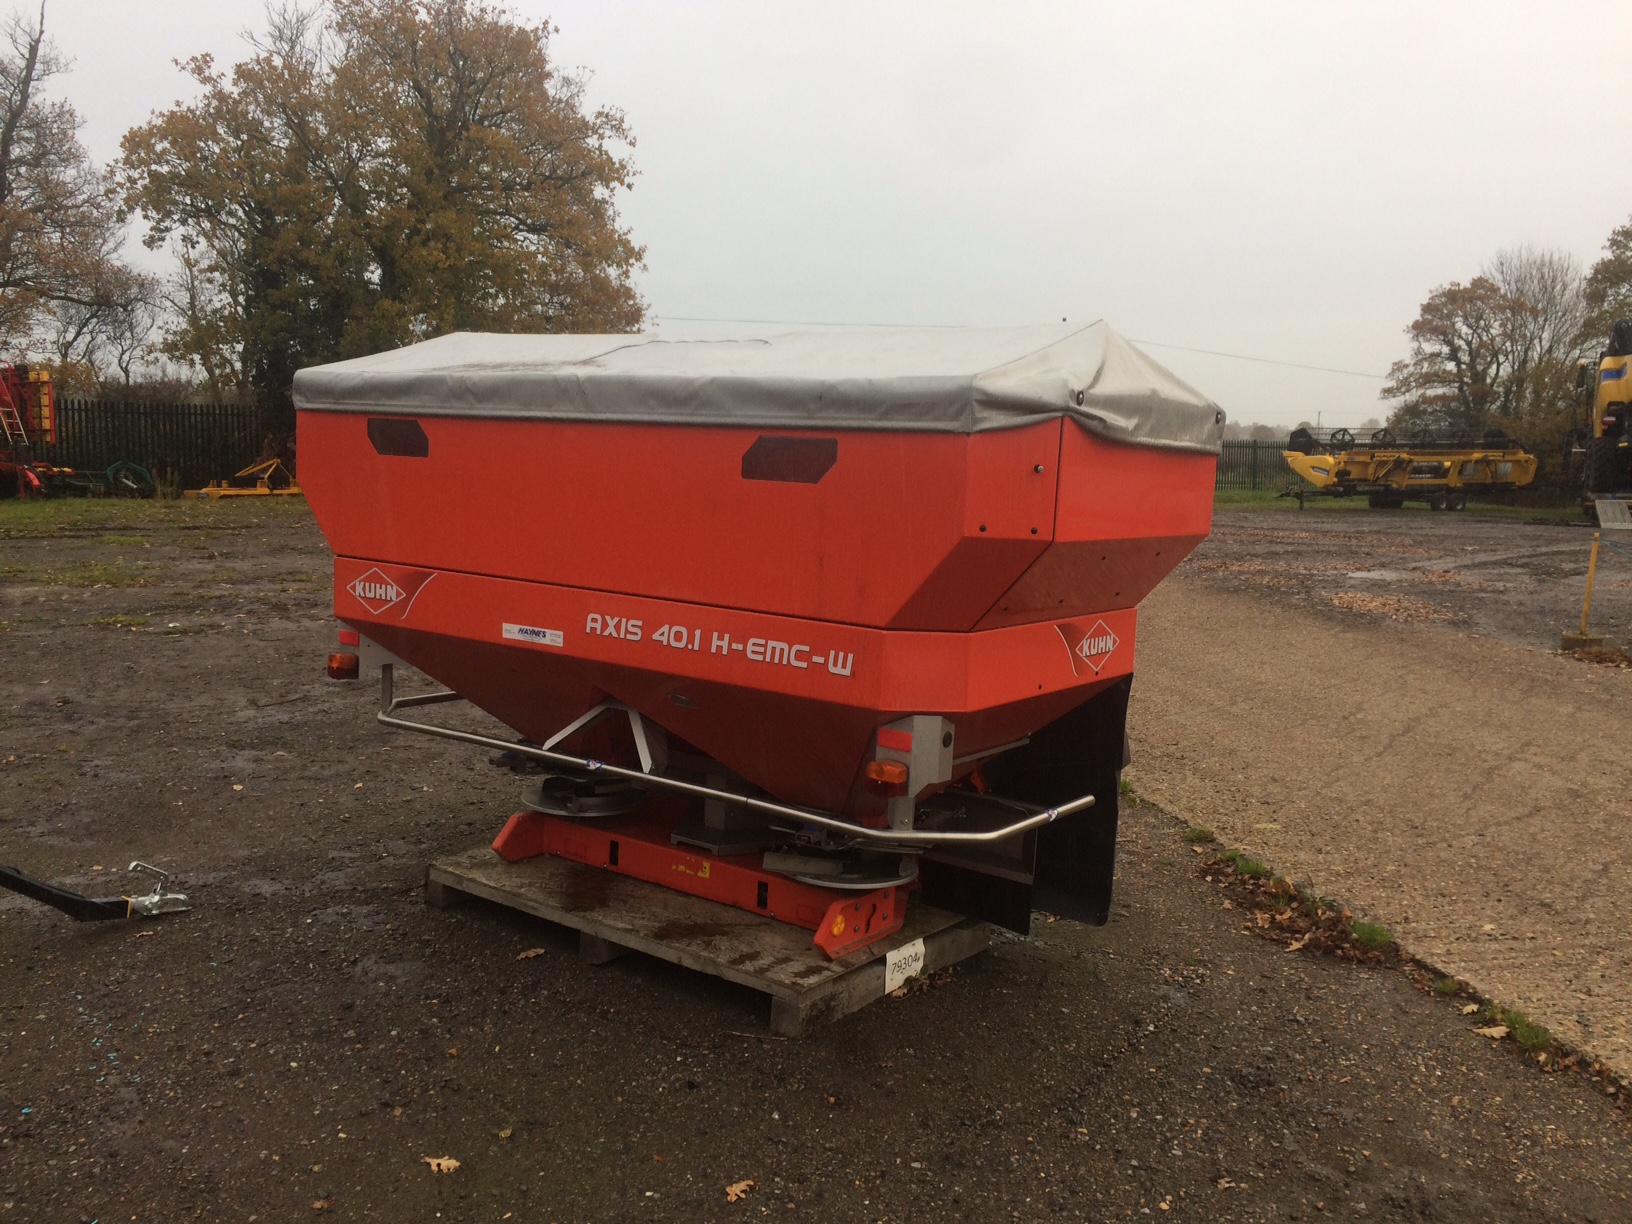 2014 USED SPREADER KUHN FERTILISER SPREADER